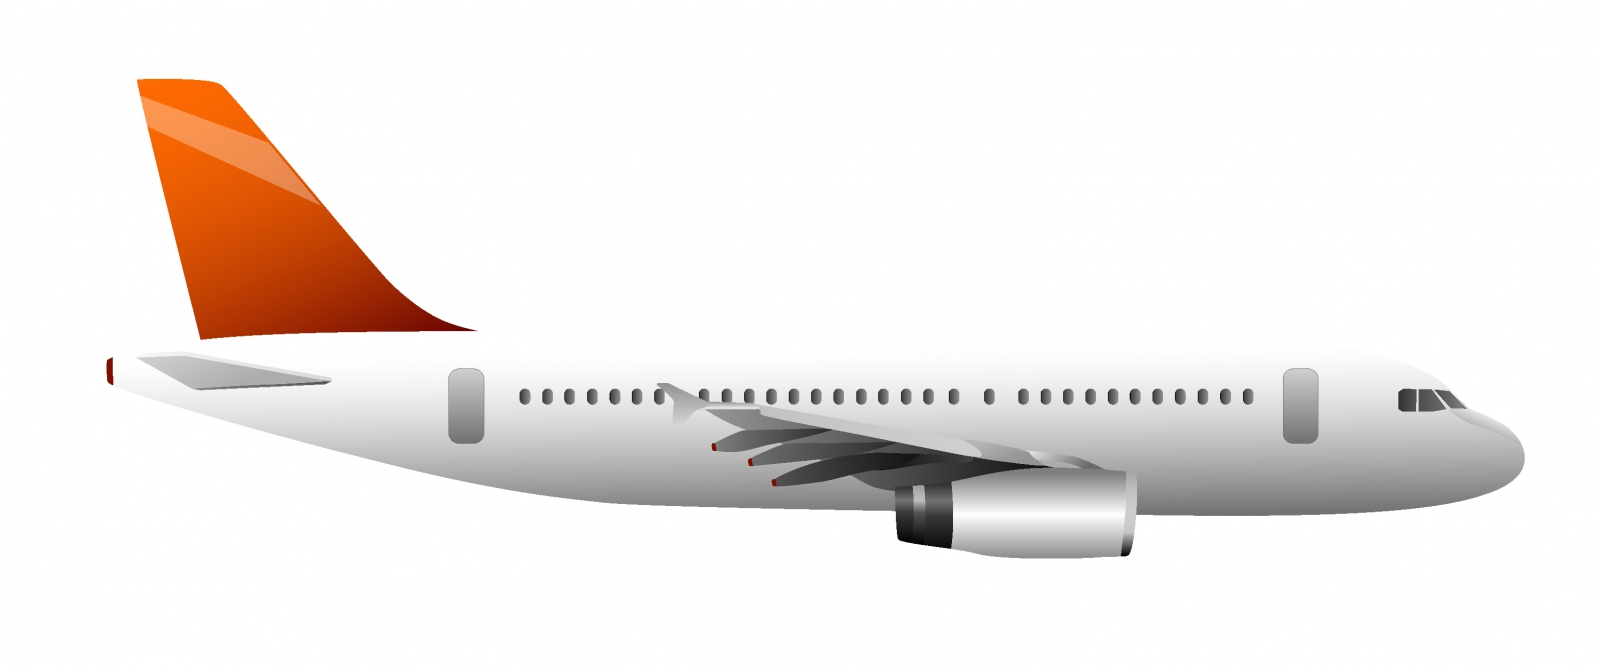 Cargo Aircraft Clipart 20 Free Cliparts Download Images